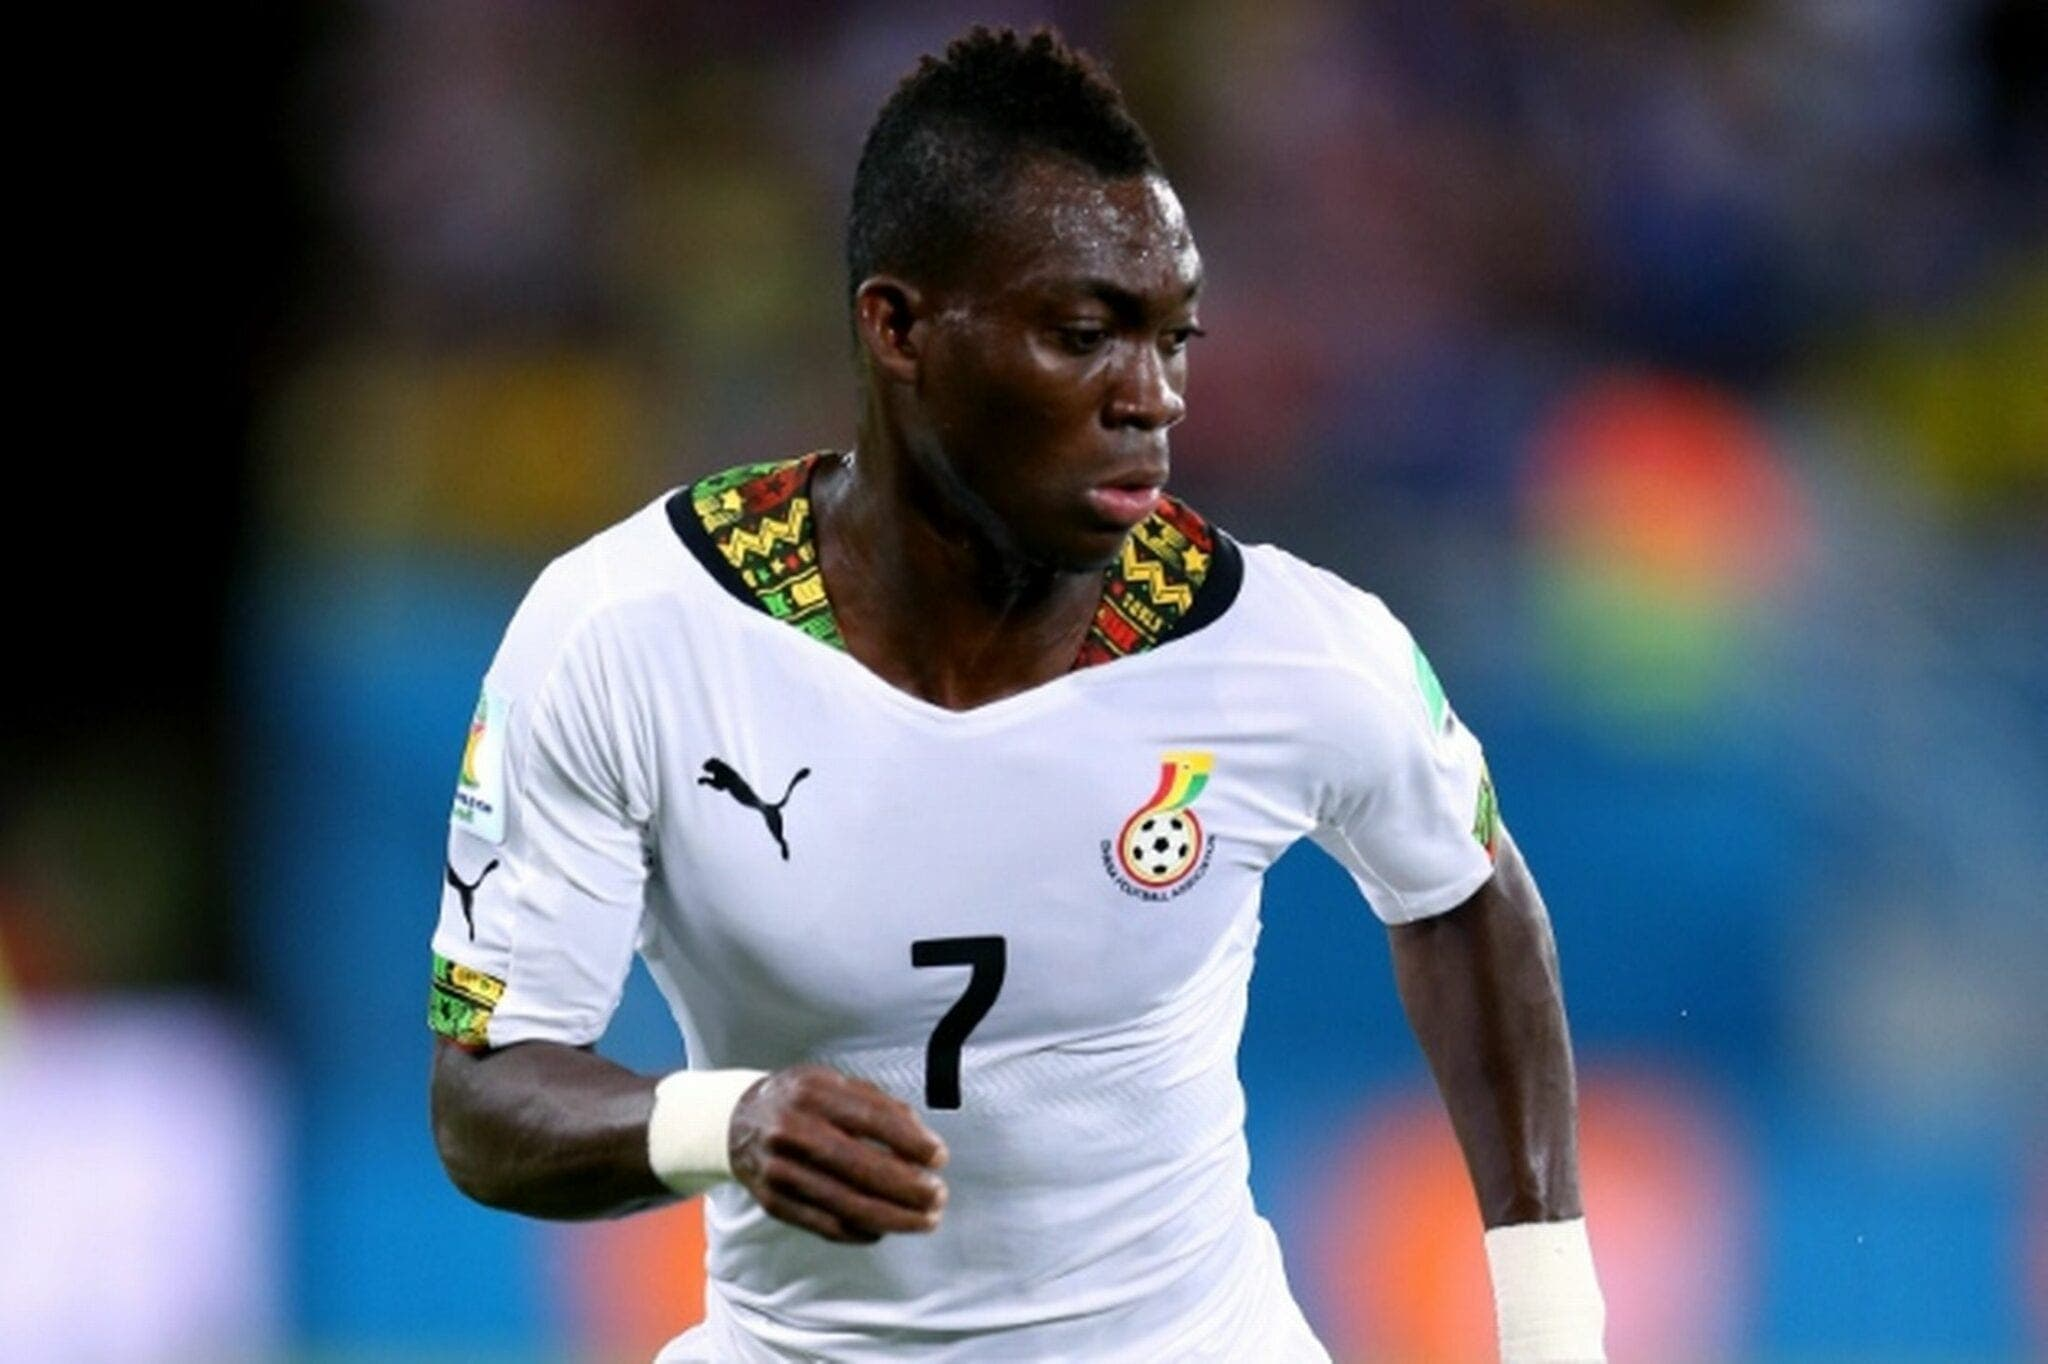 Football/Ghana : Christian Atsu annonce sa retraite internationale